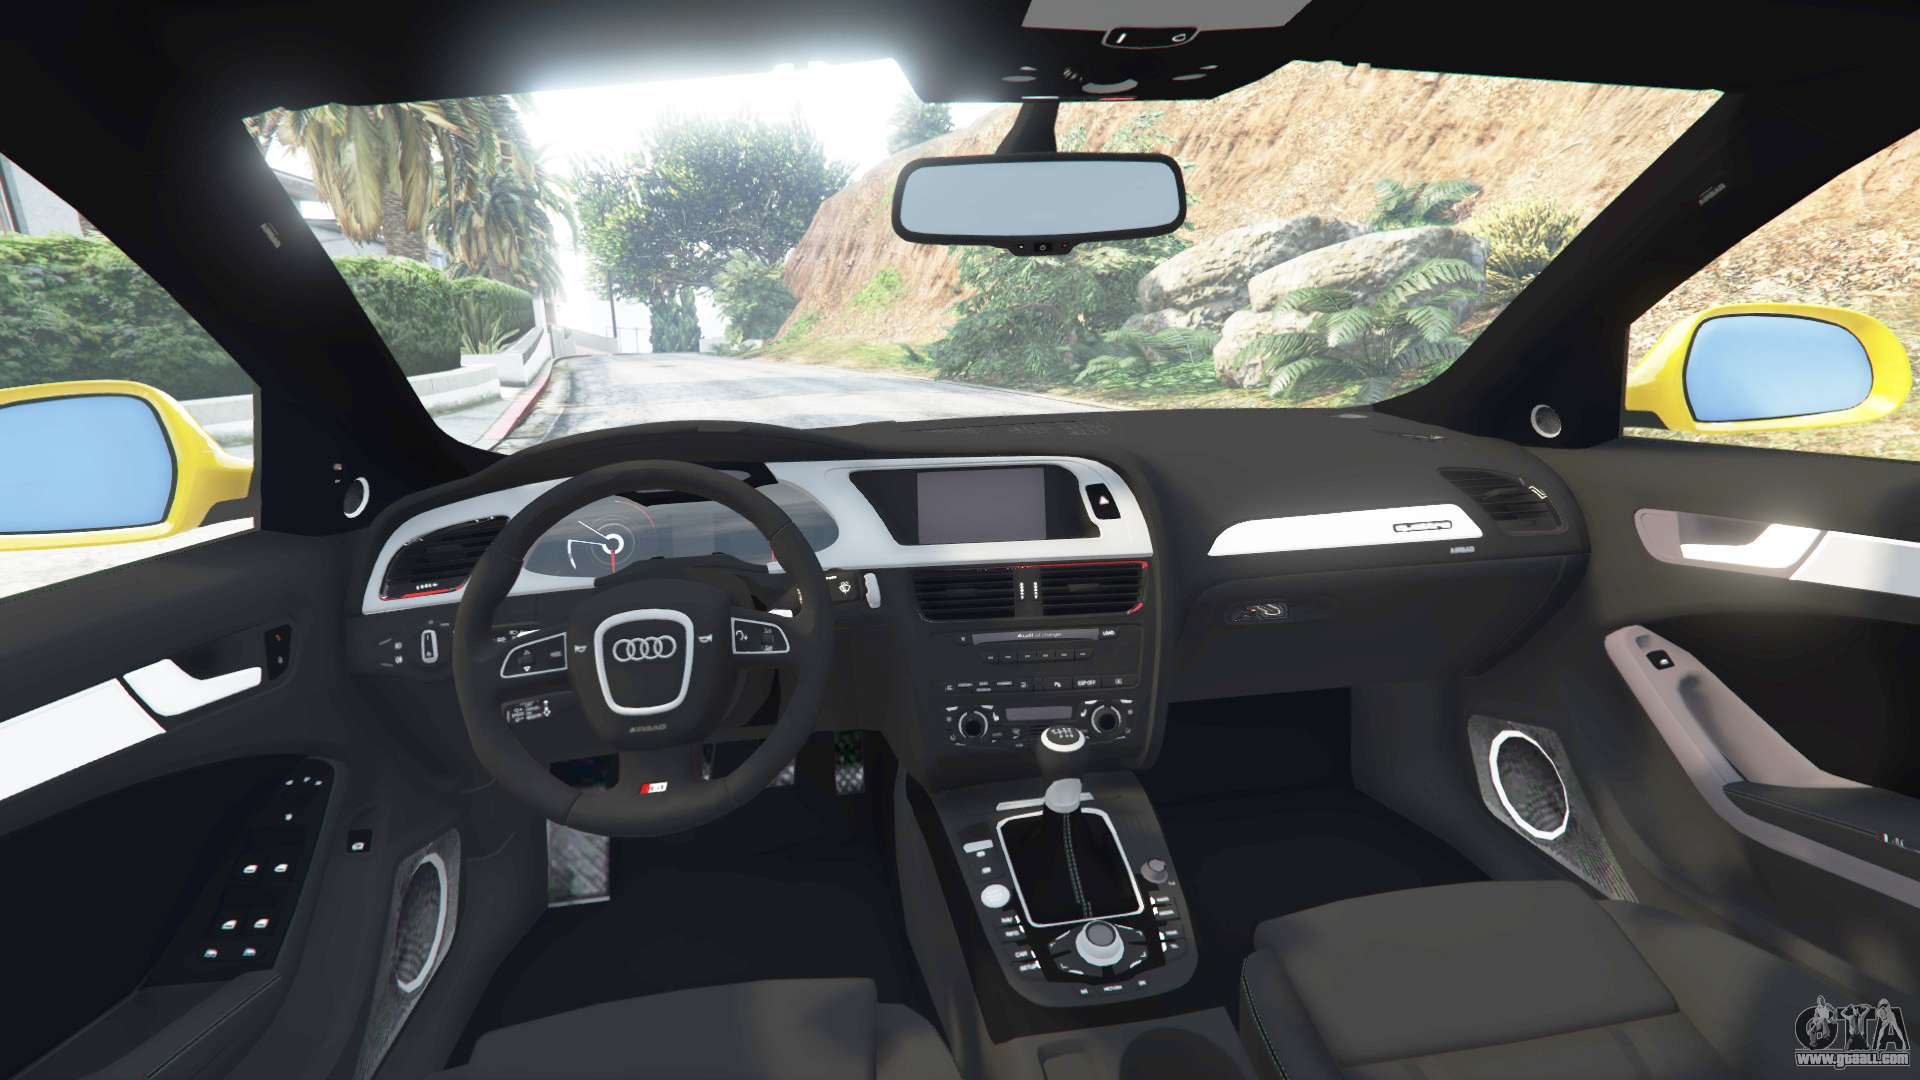 Gta 5 audi a4 2009 front right side view